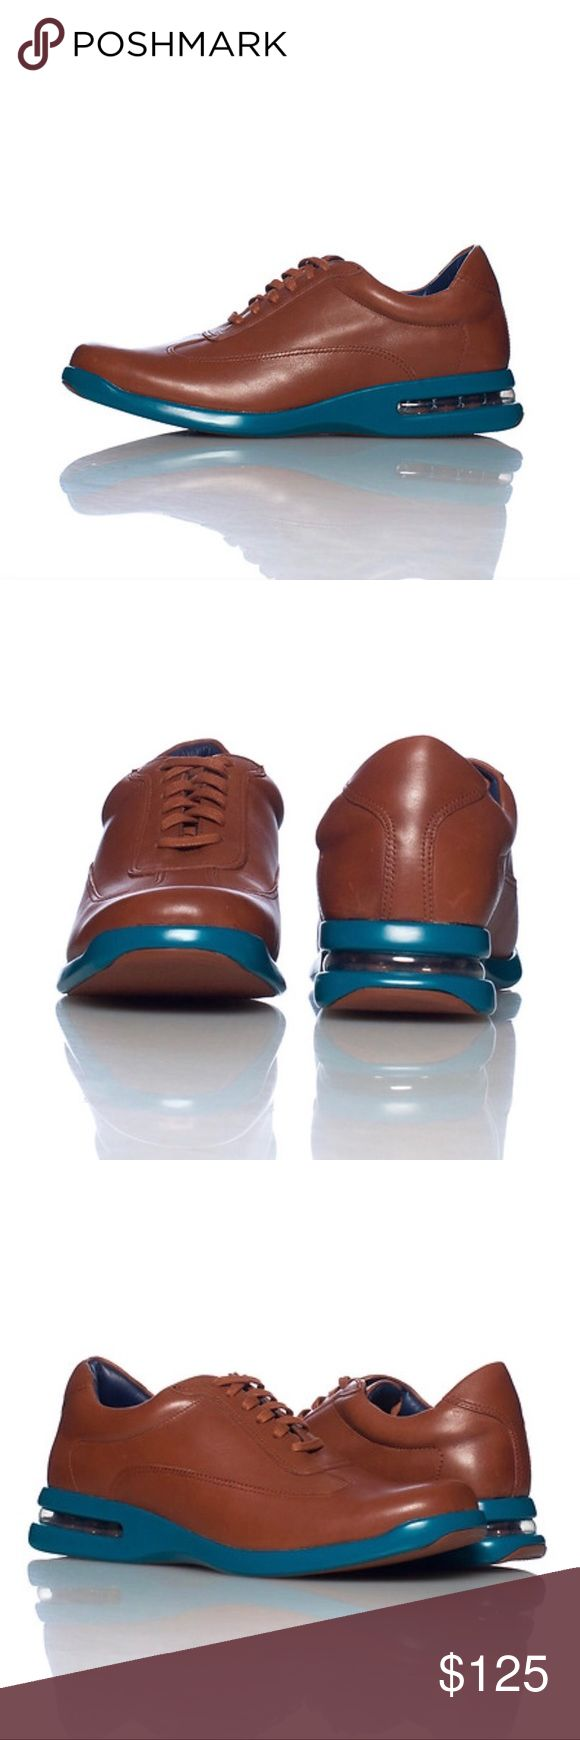 Cole Haan Air Conner shoe - size 14 Cole Haan Air Conner shoe in Brown leather - size 14 NEW Low top leather shoe  Lace closure  Air bubble heel  Cushioned inner sole FIT: True to size FABRIC: Leather Cole Haan Shoes Oxfords & Derbys